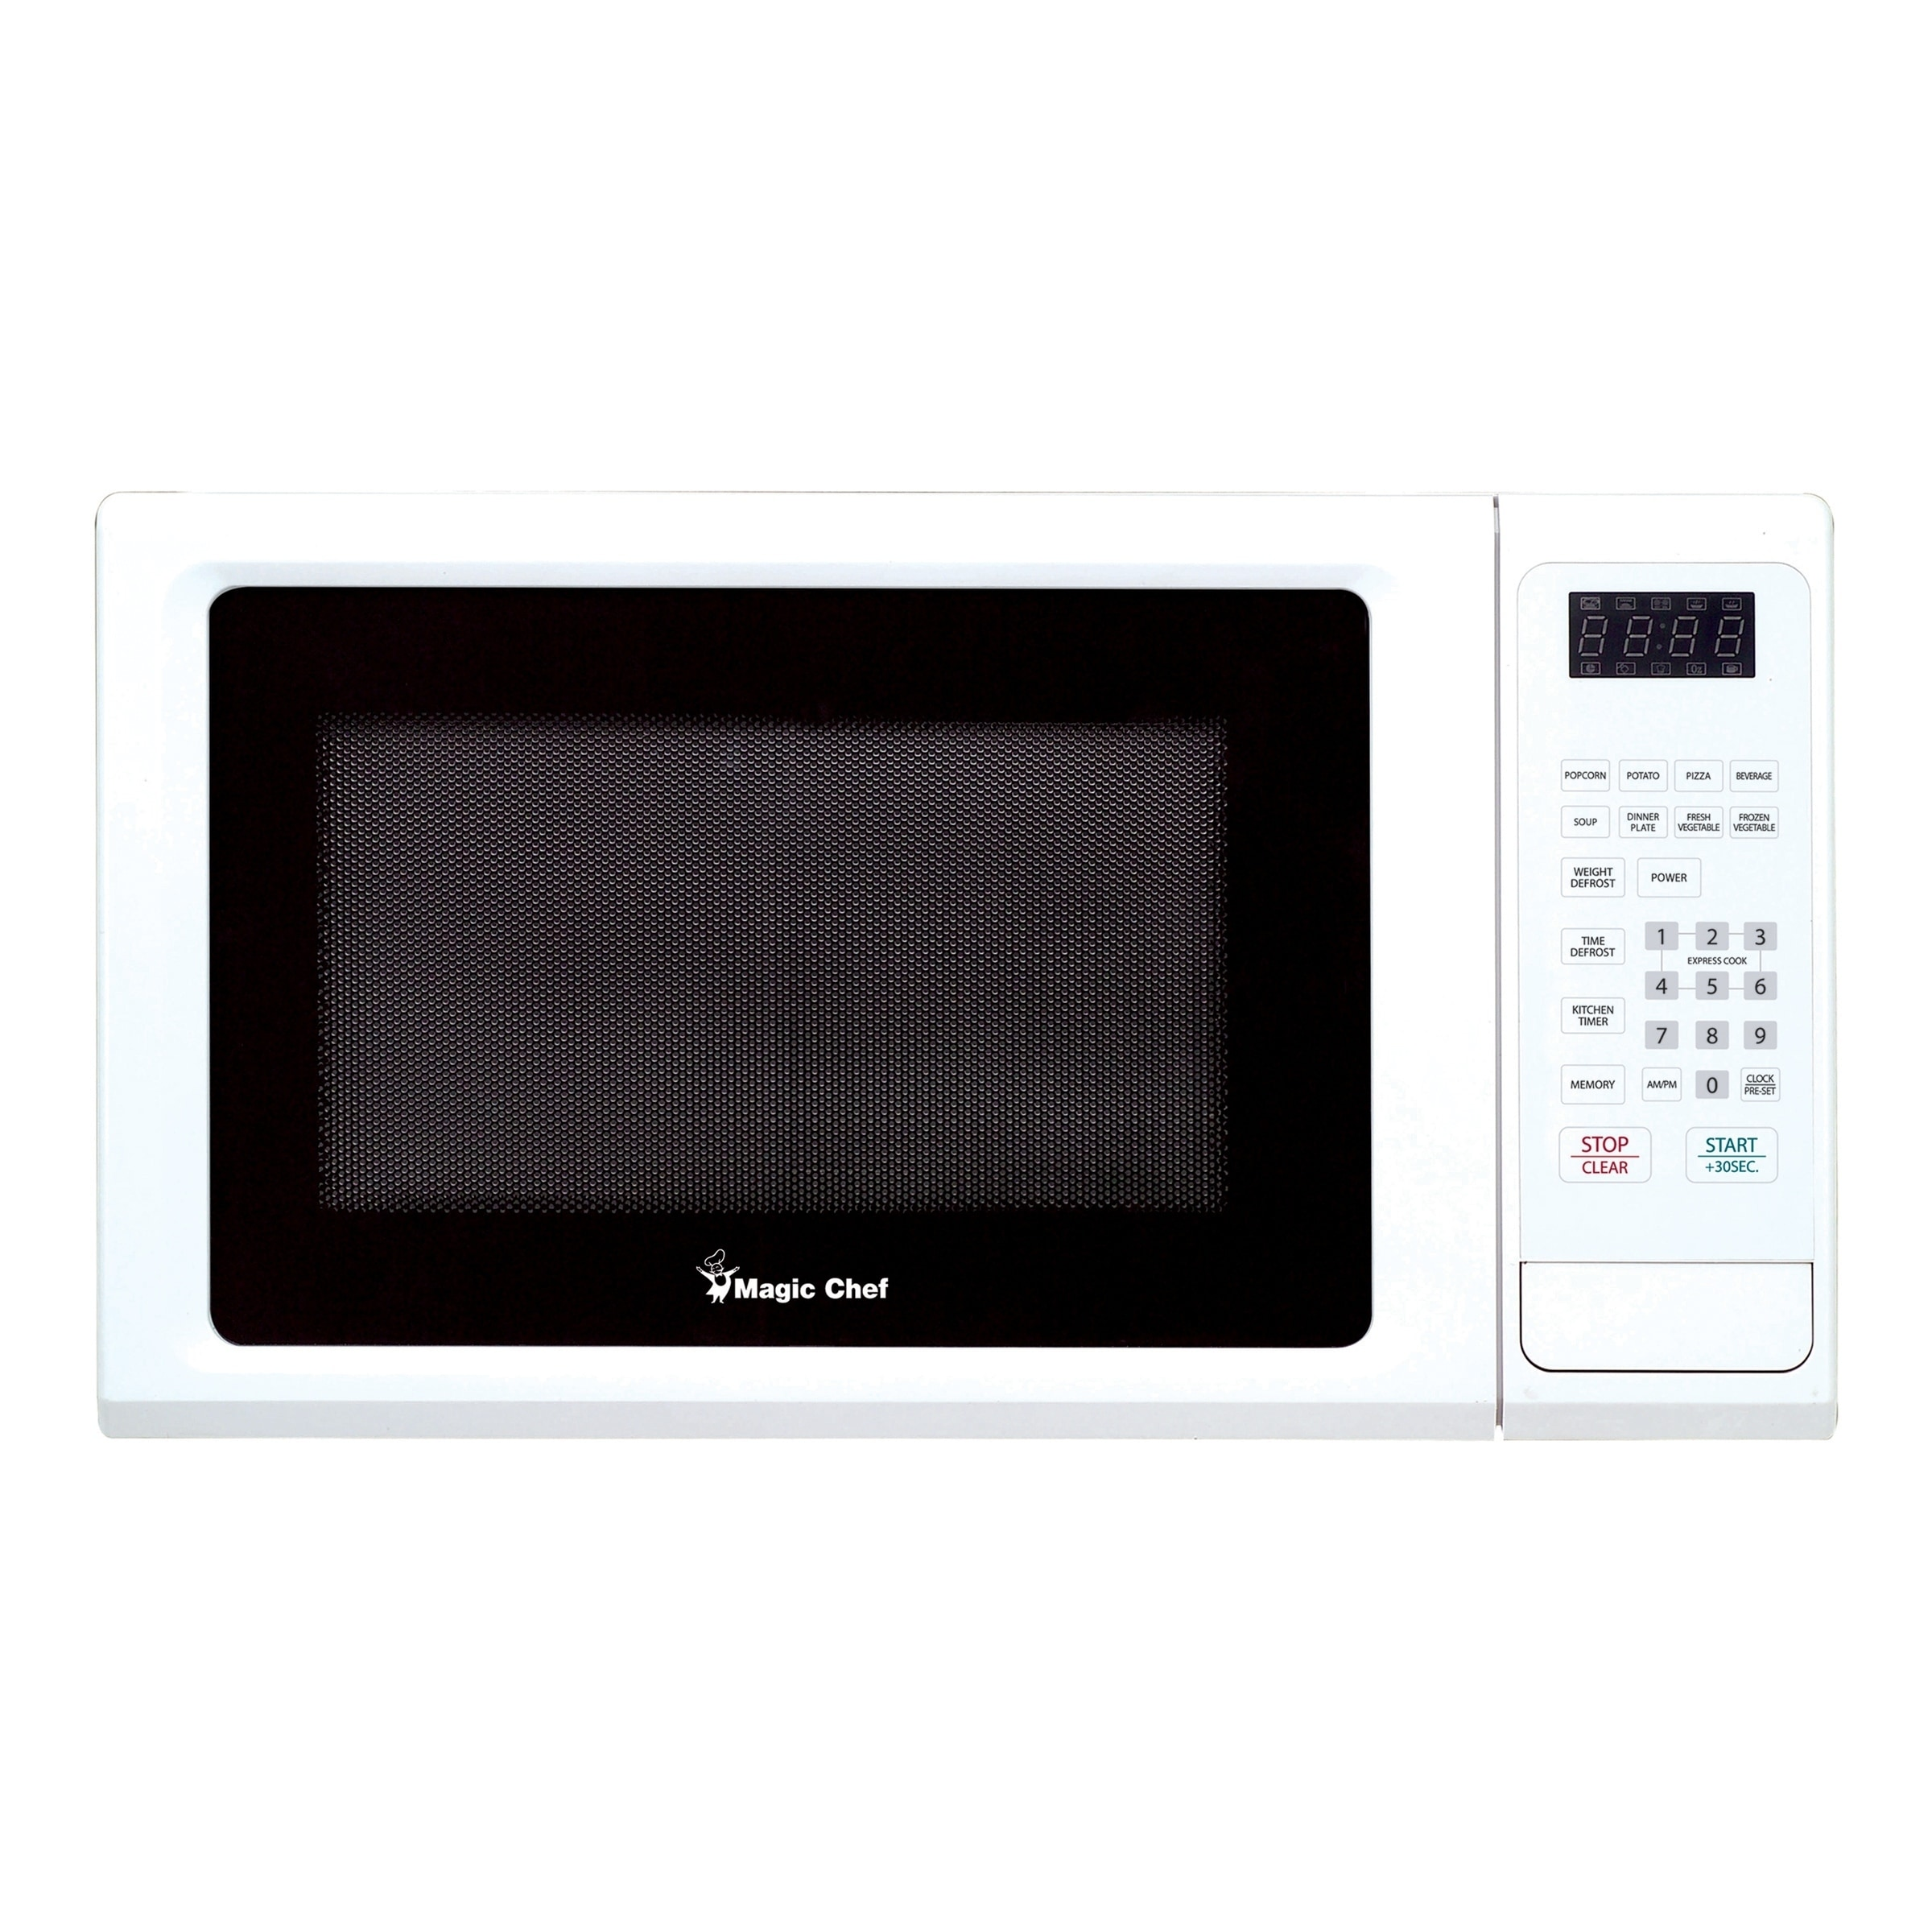 Magic Chef 1 Cubic Ft Countertop Microwave Oven White Free Shipping Today 17039772